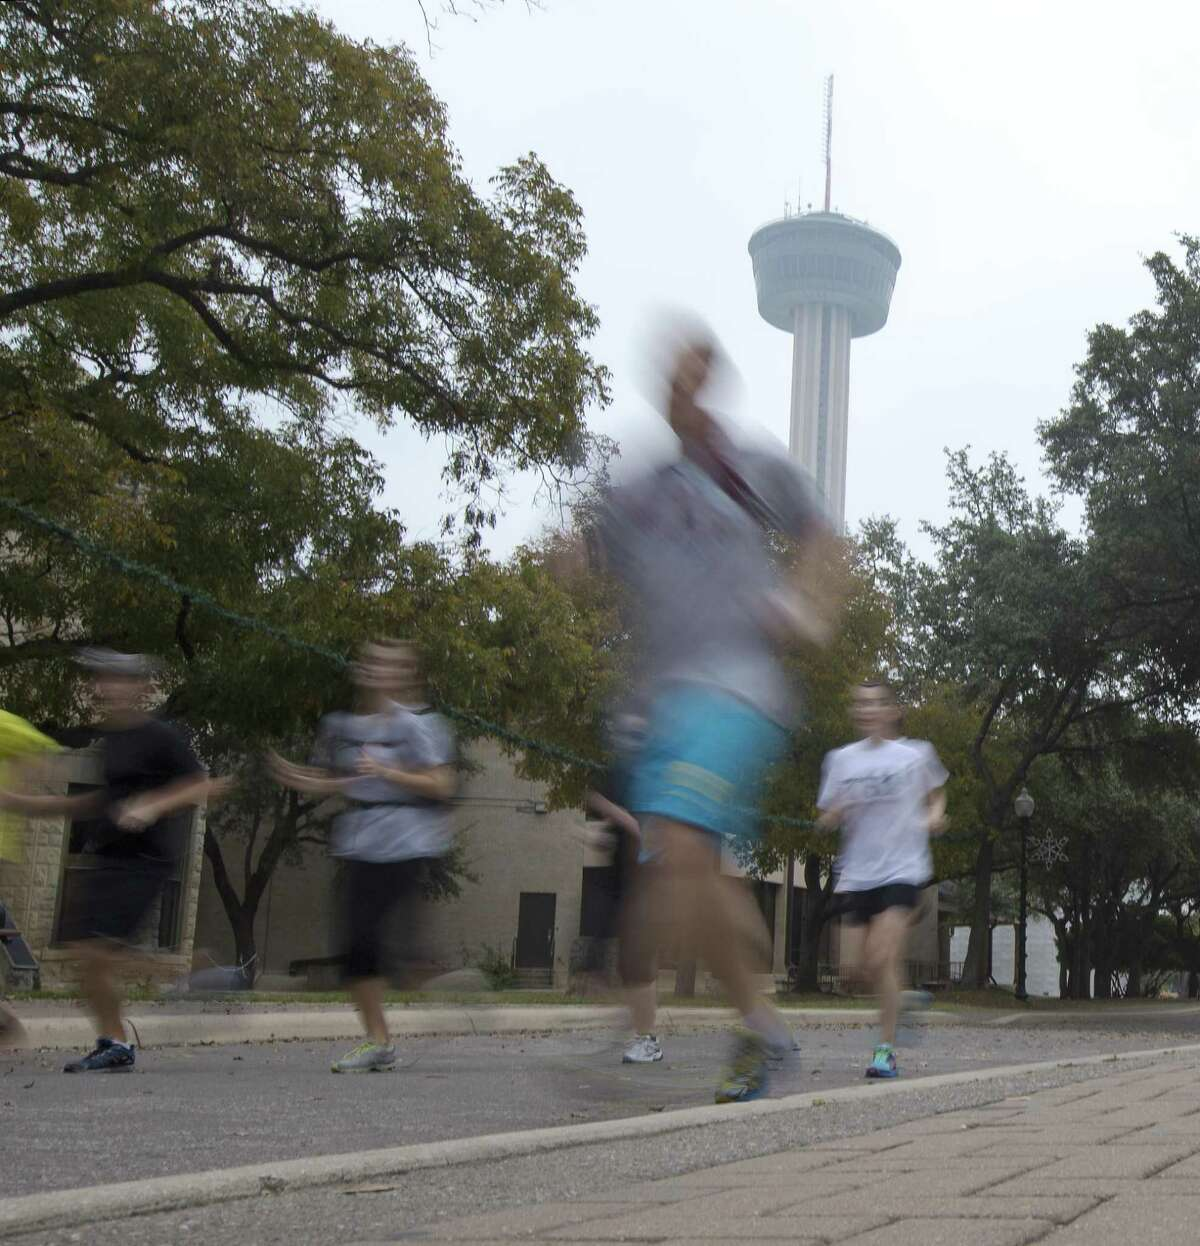 To really explore San Antonio on foot, try River City Run, a 5K course through the heart of downtown with informative stops at historic locations along the way.